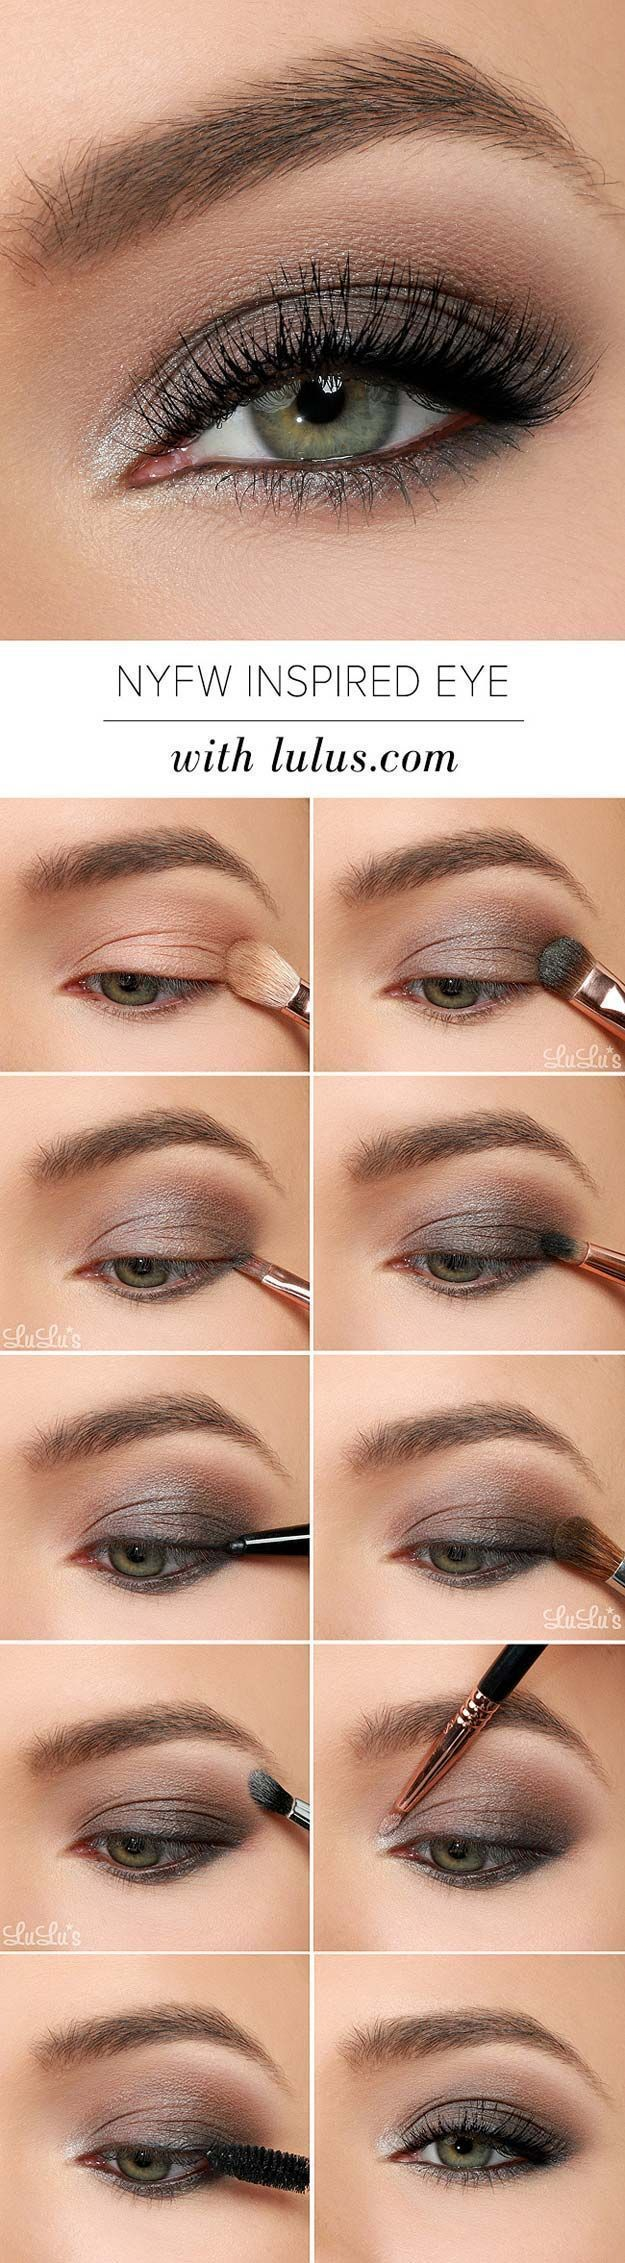 Best Eyeshadow Tutorials - NYFW Inspired Eye Shadow Tutorial - Easy Step by Step...